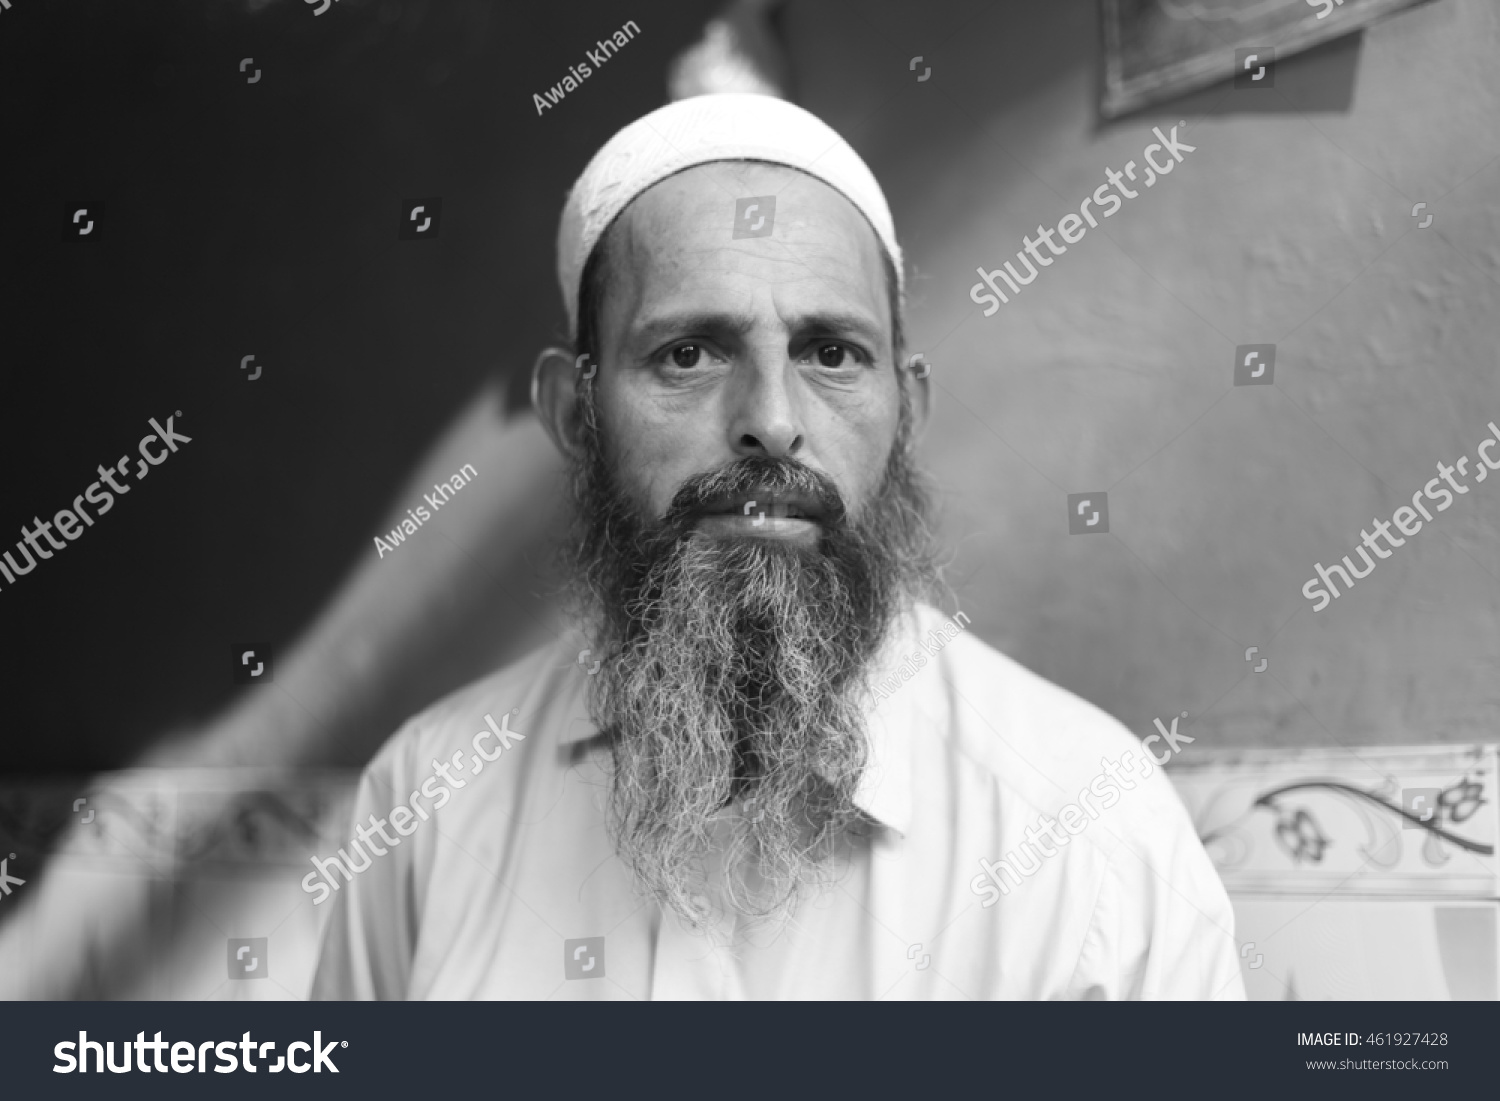 Peshawar pakistan may portrait picture of tribe leader or tribe masher on